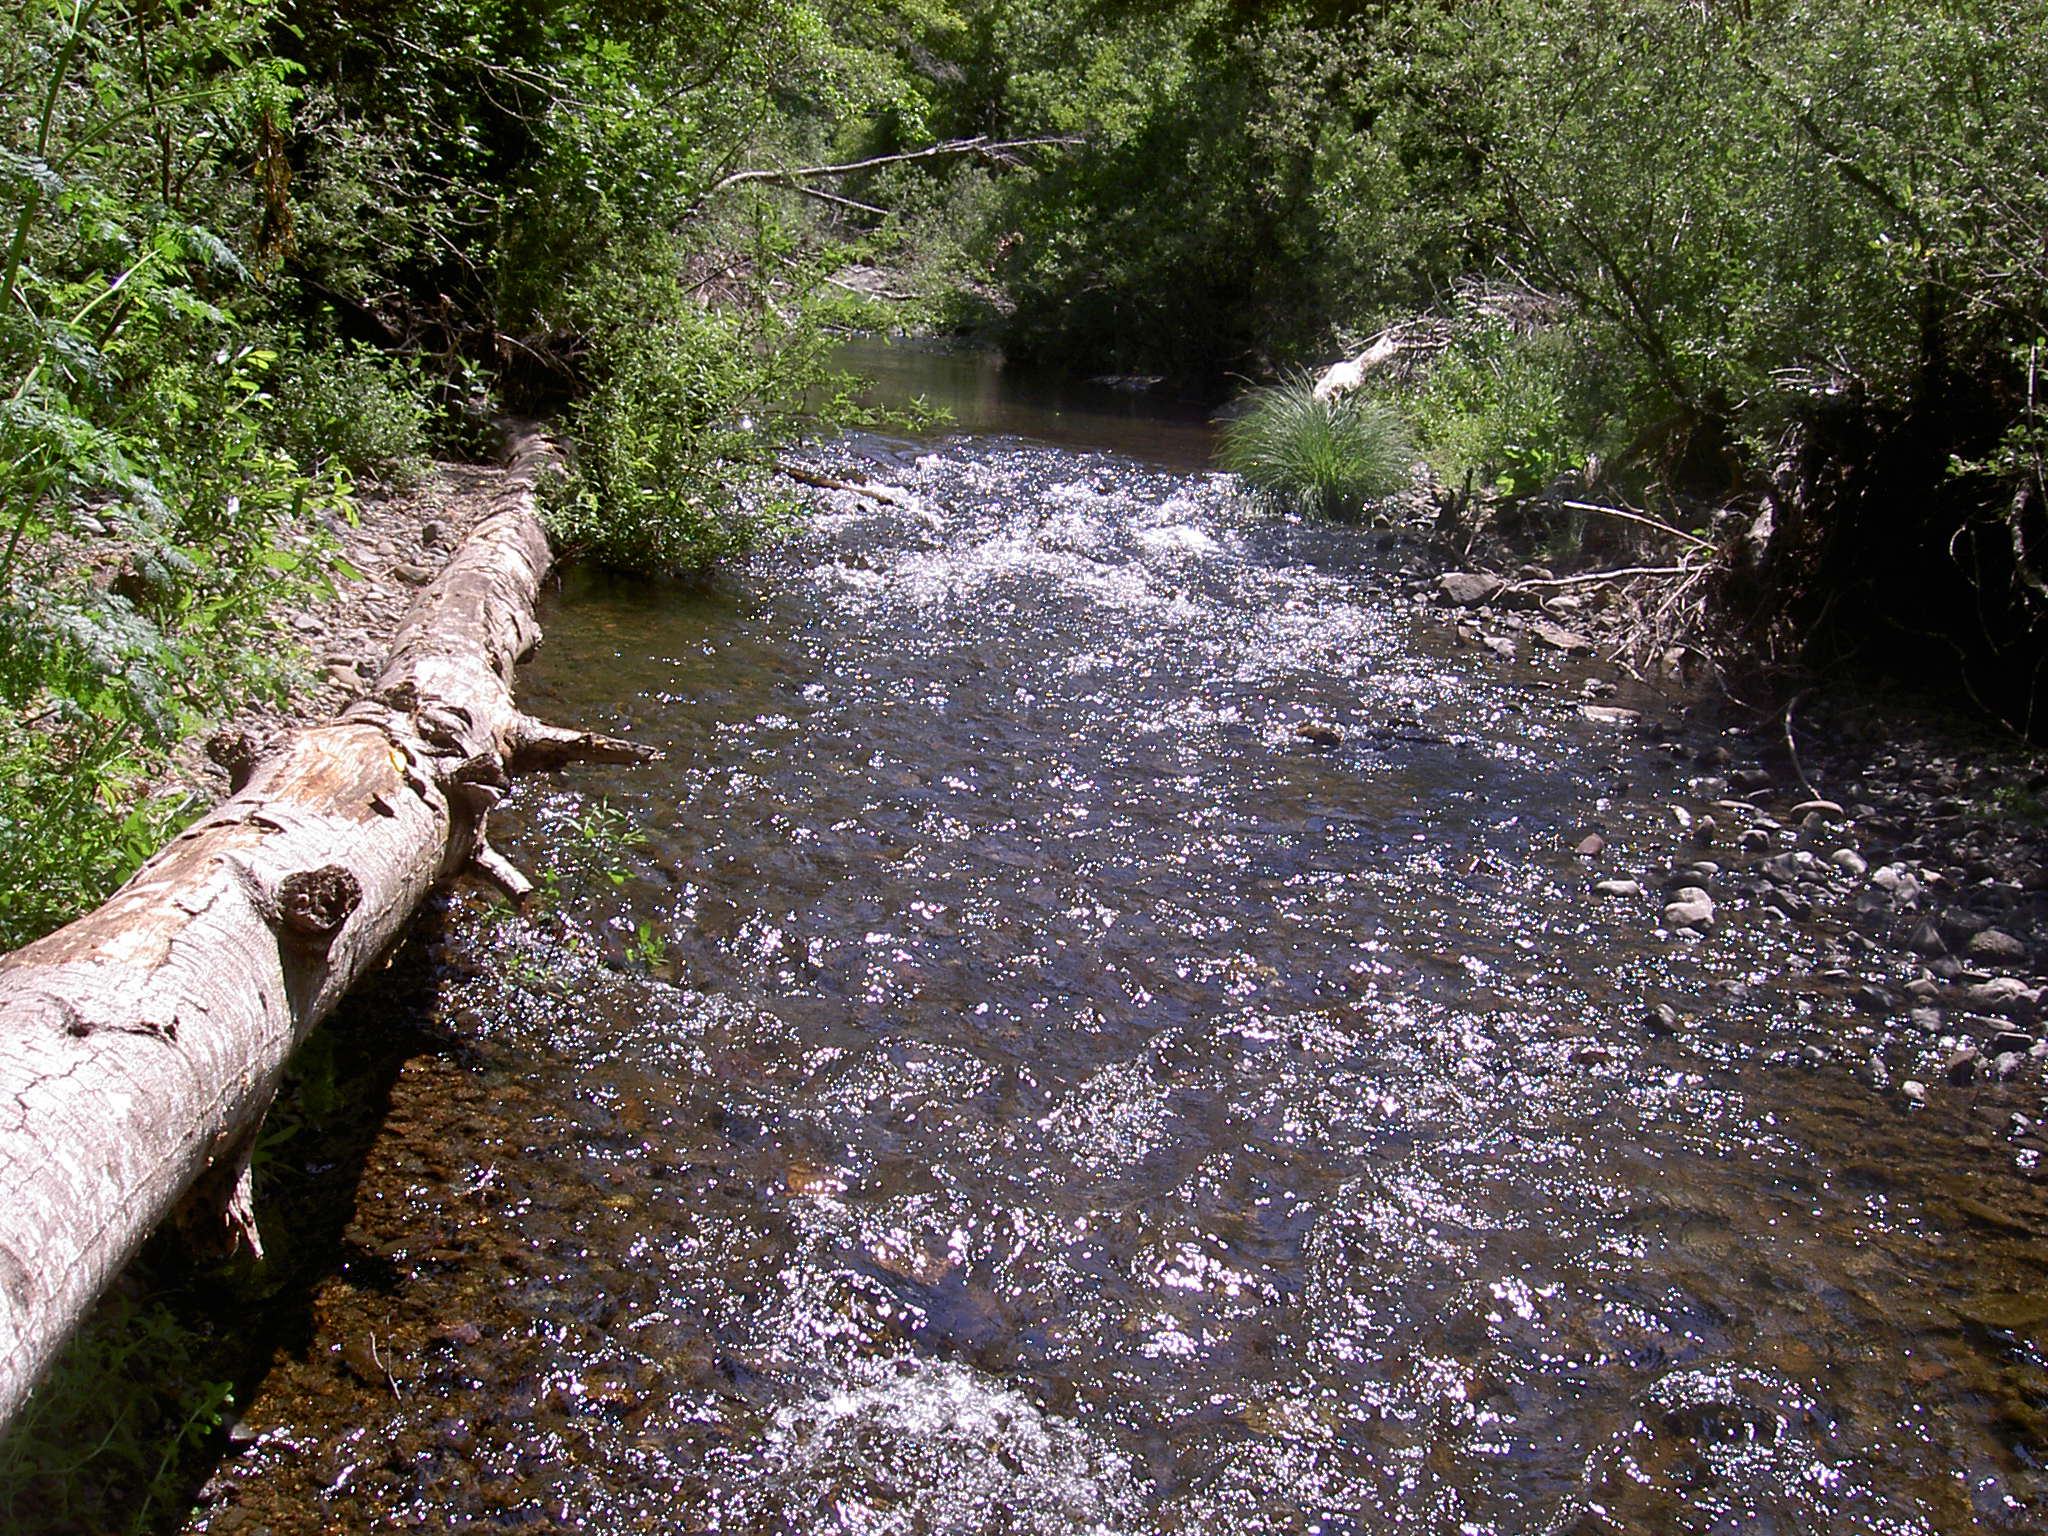 Trump Administration Slashes Protections for Bay Area Streams